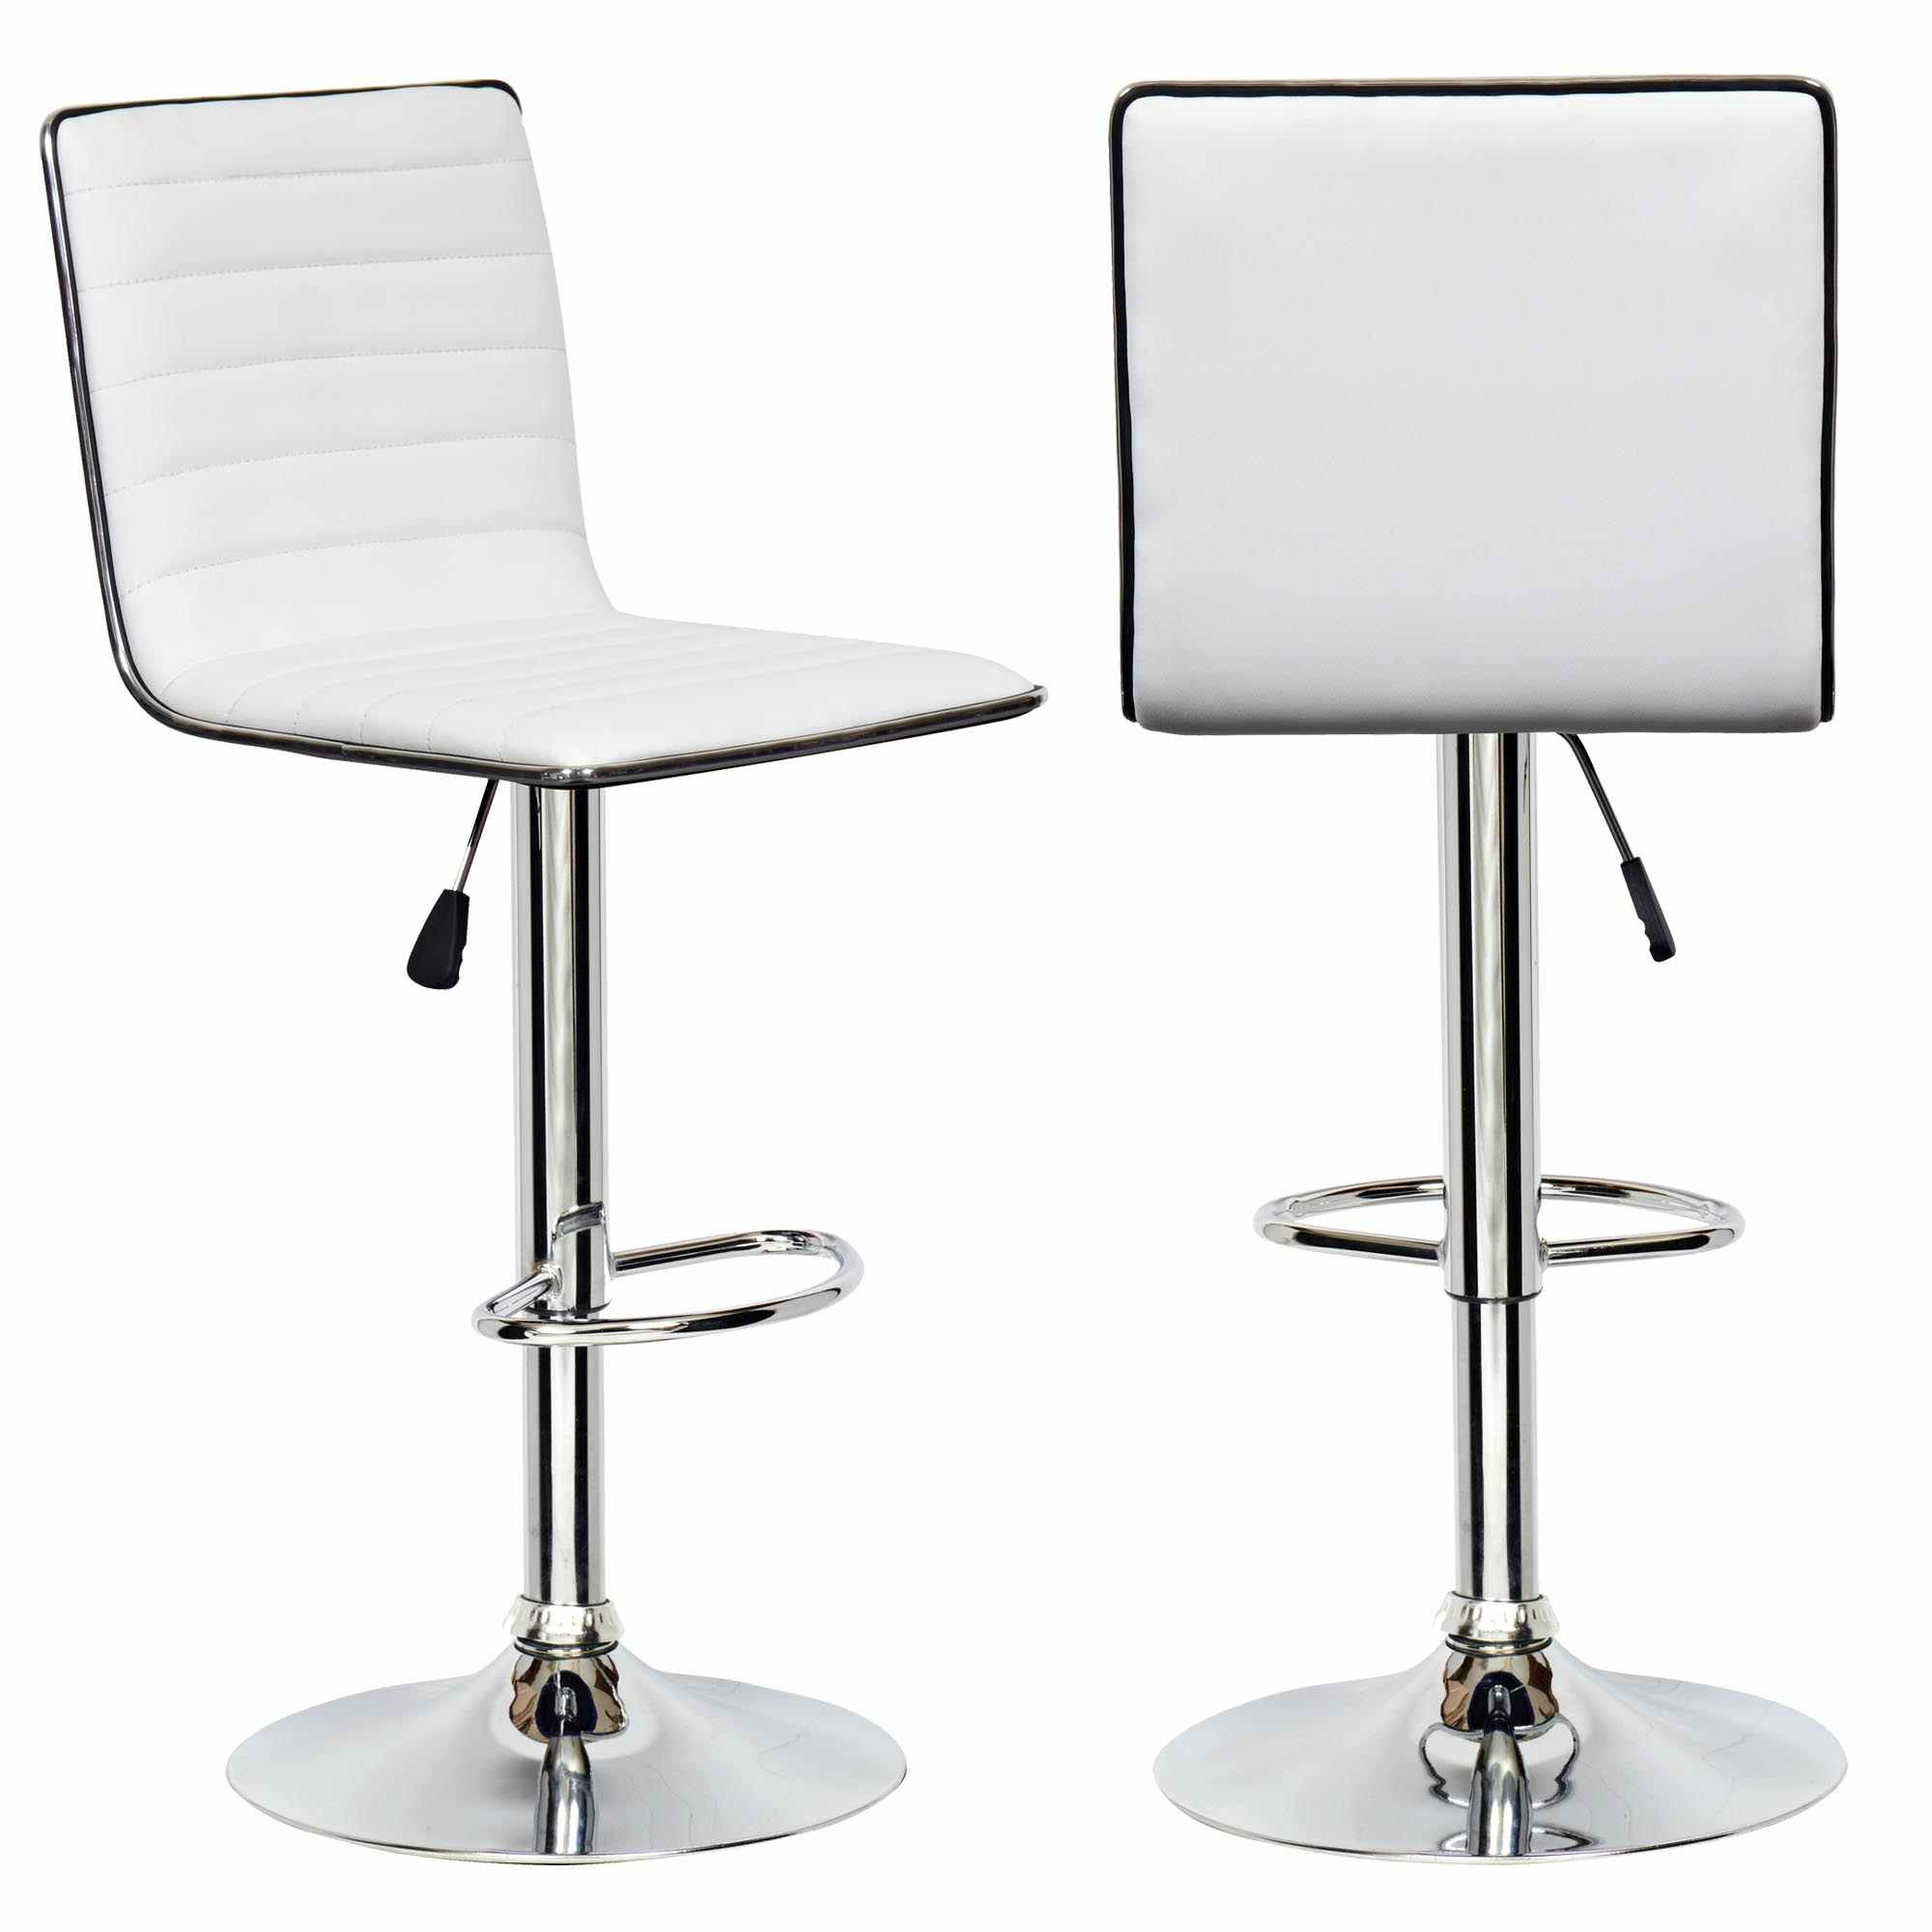 Tabouret De Bar Blanc Et Noir Deco In Paris Lot De 2 Tabourets Blanc Et Noir Design